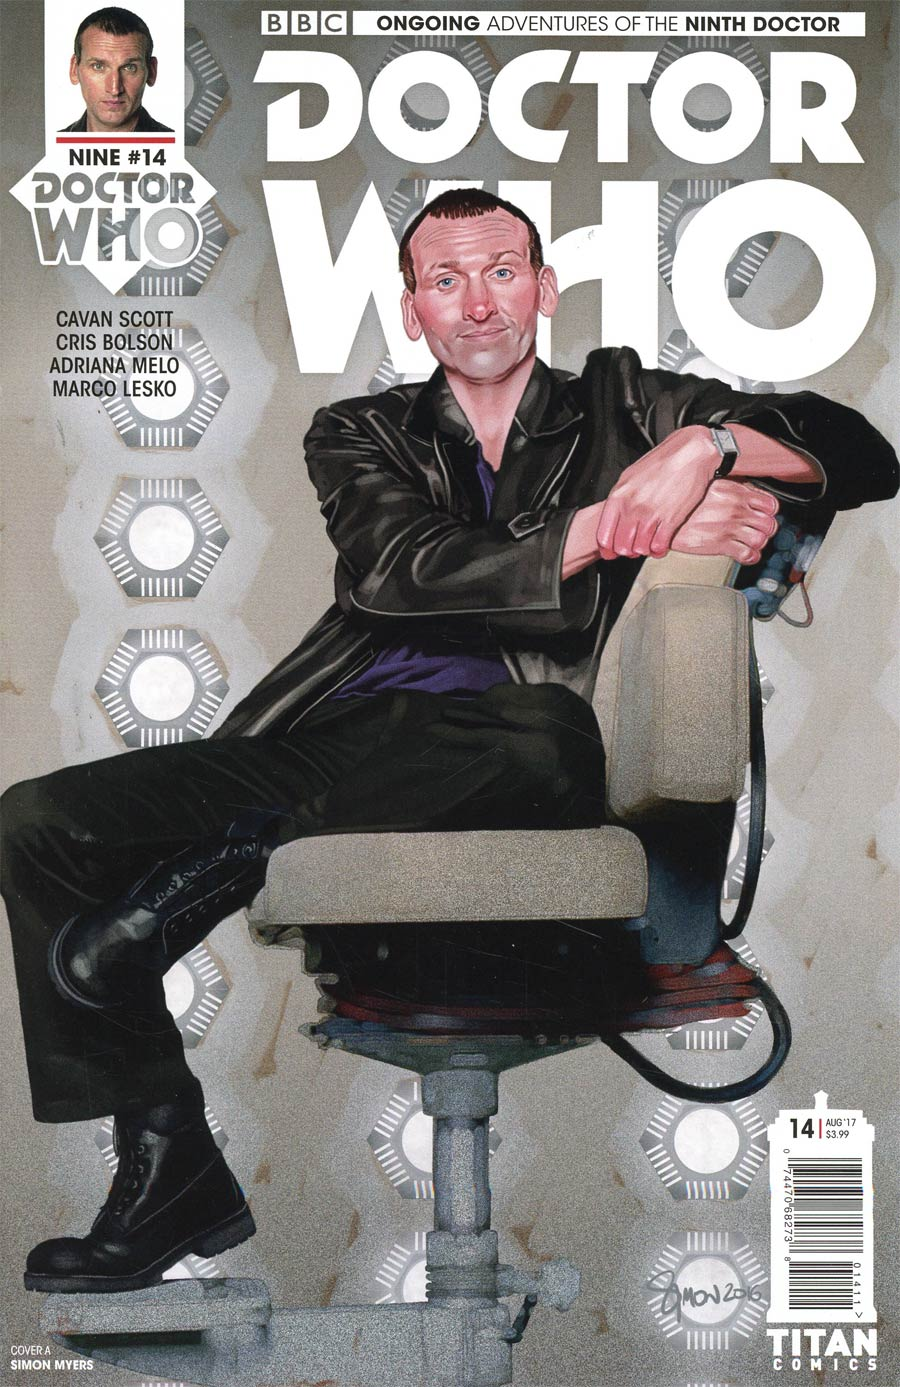 Doctor Who 9th Doctor Vol 2 #14 Cover A Regular Simon Myers Cover